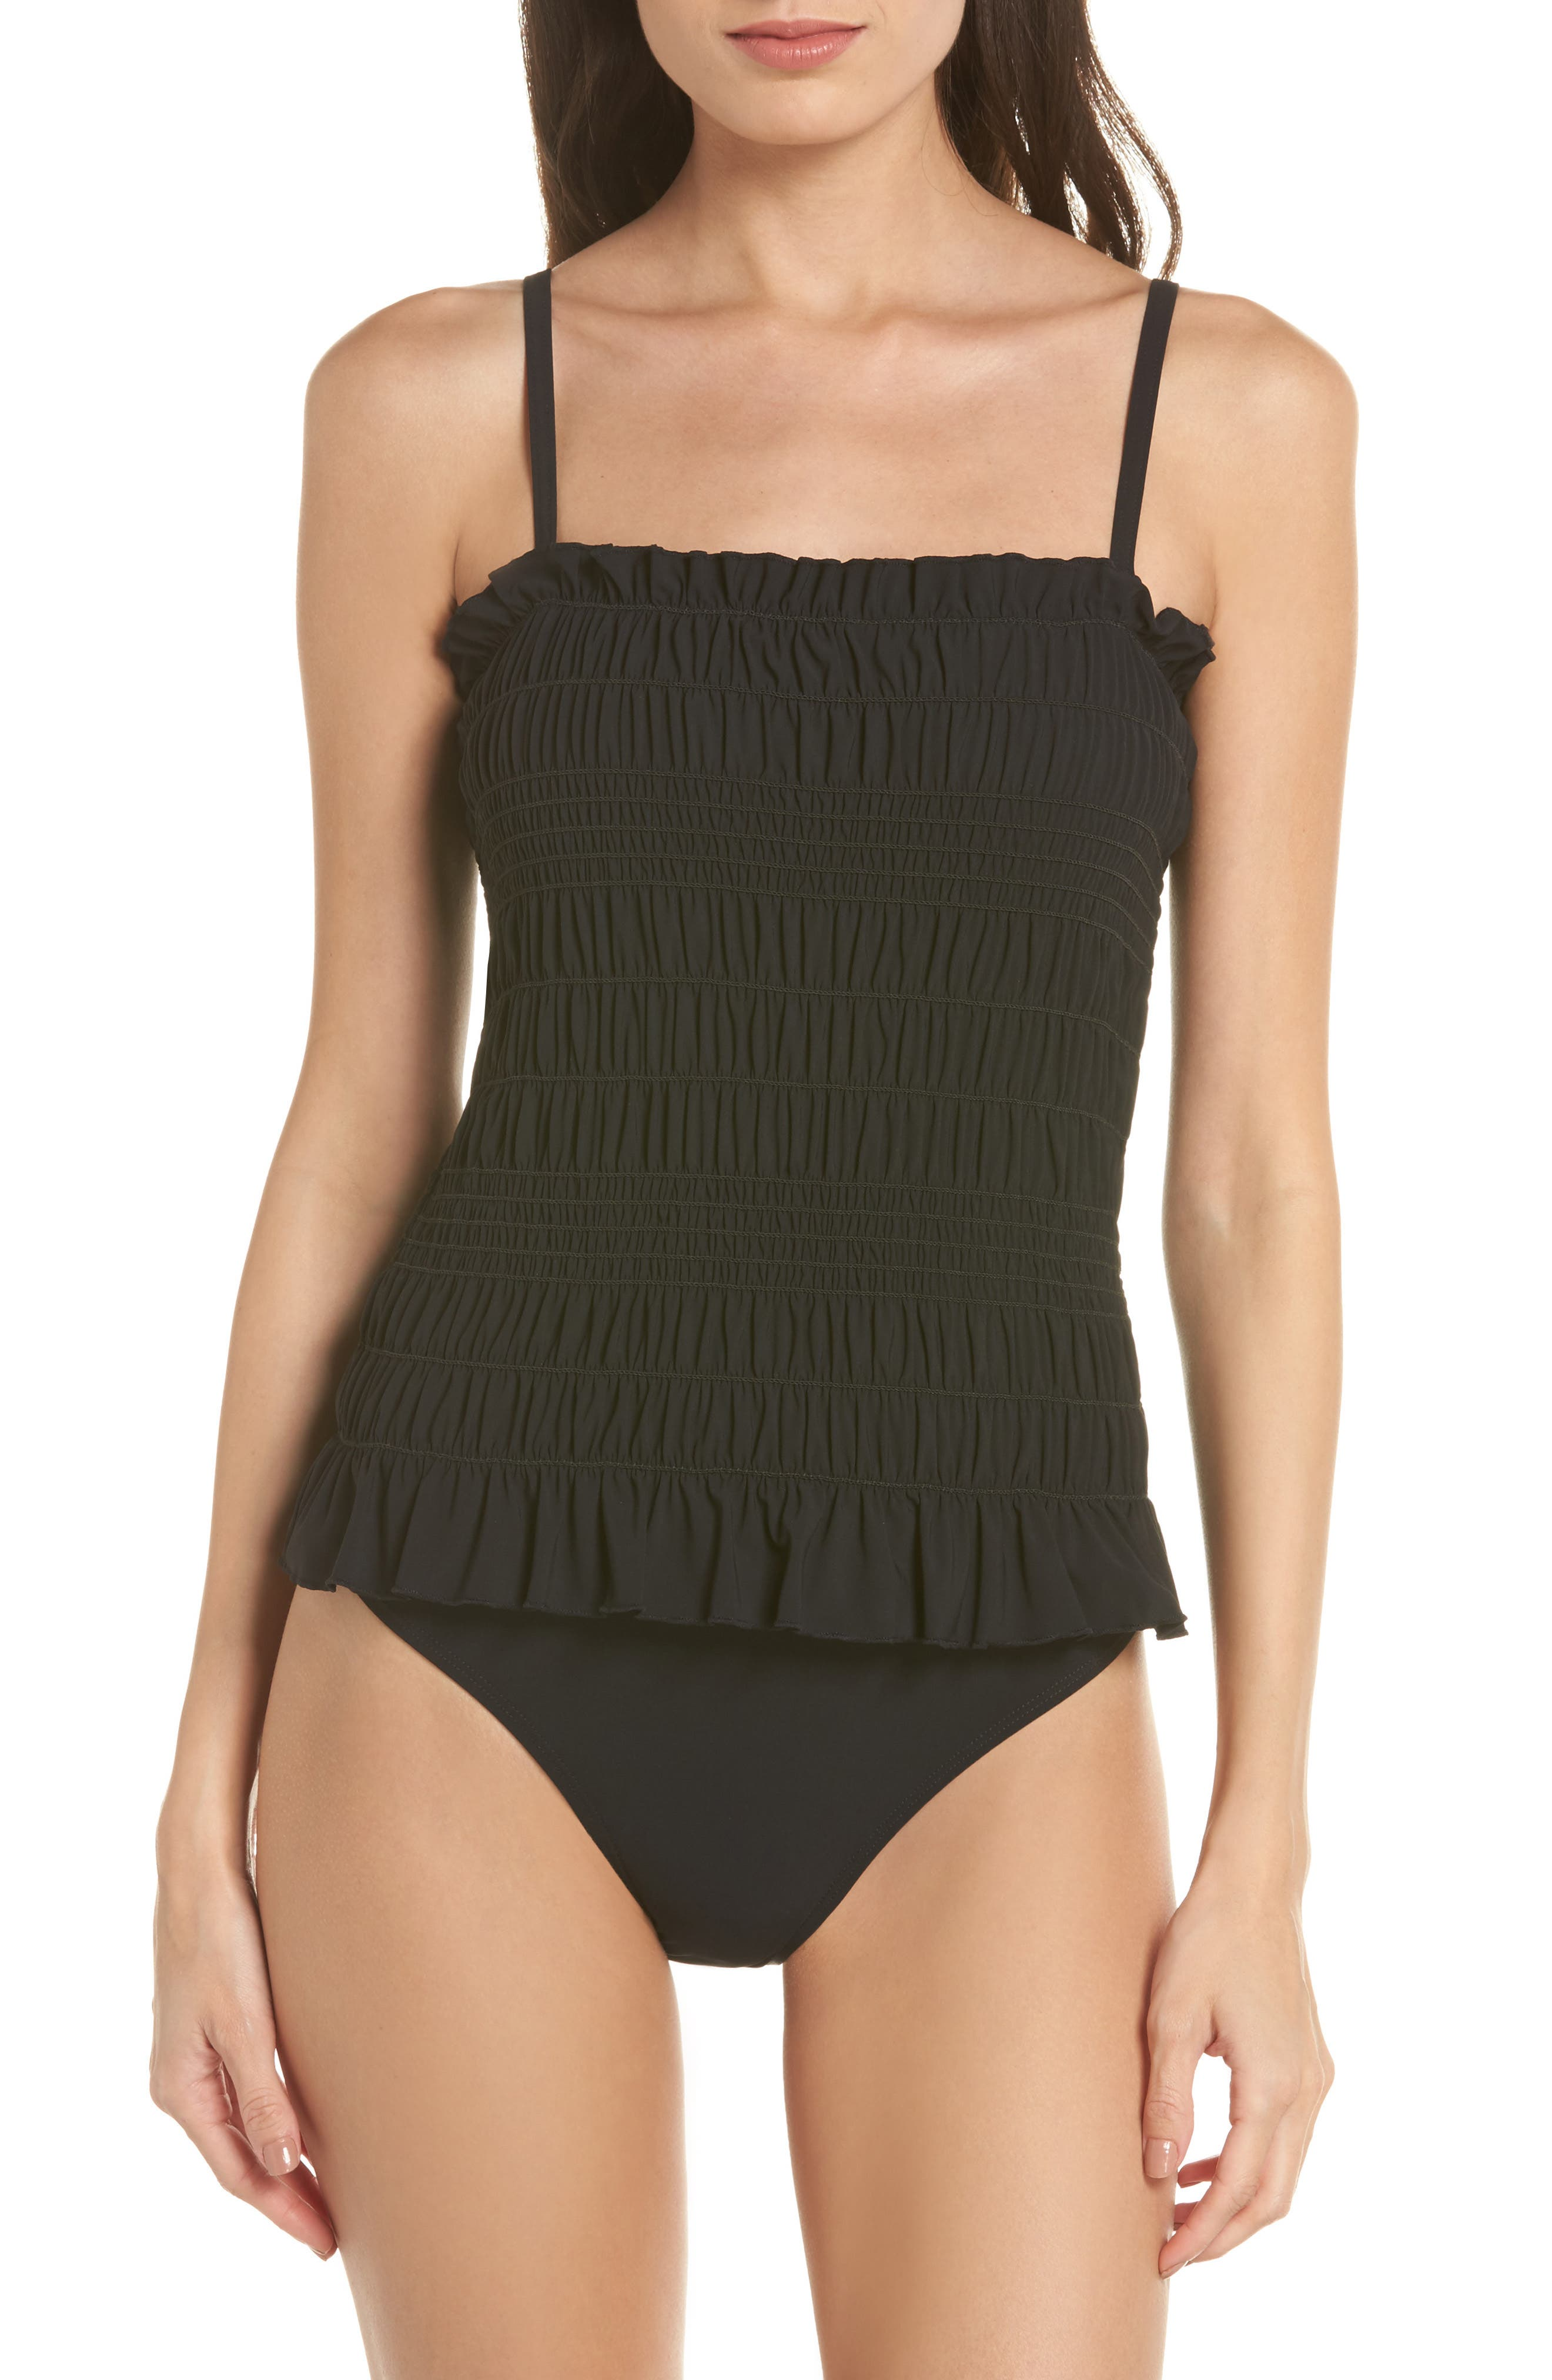 Costa Smocked One-Piece Swimsuit,                             Alternate thumbnail 2, color,                             Black / Black